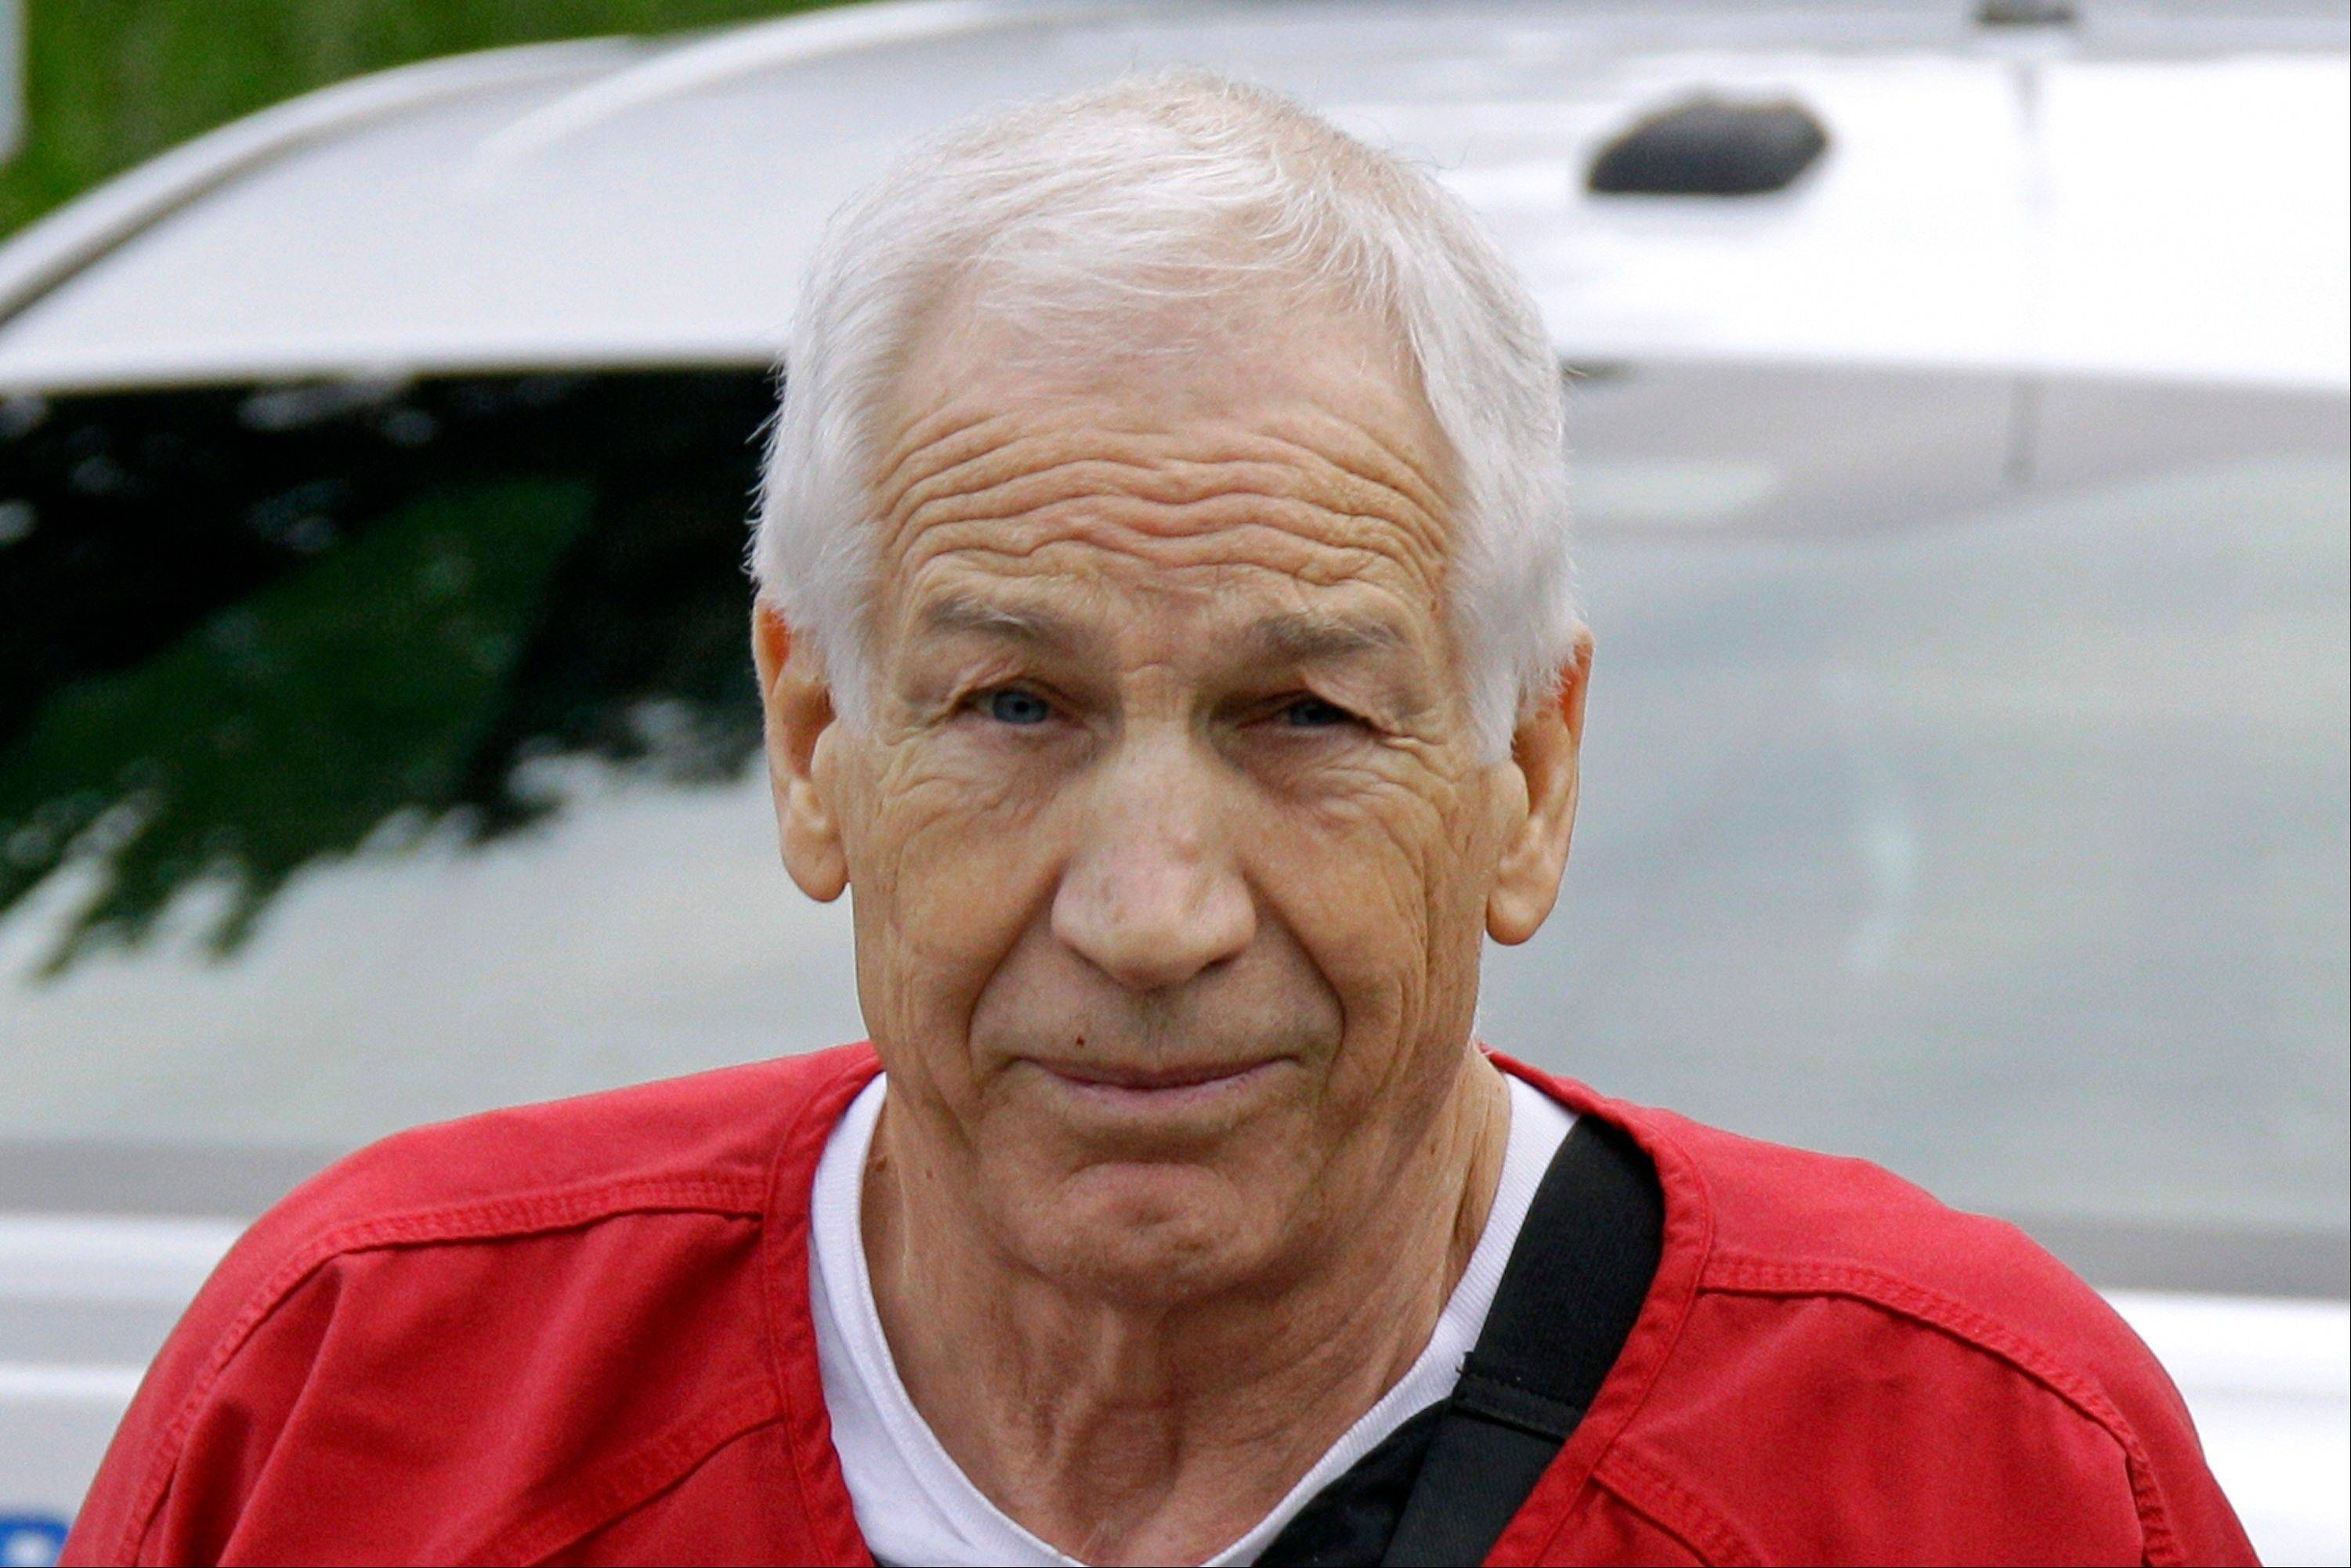 Former Penn State University assistant football coach Jerry Sandusky arrives for sentencing at the Centre County Courthouse in Bellefonte, Pa., Tuesday, Oct. 9, 2012.